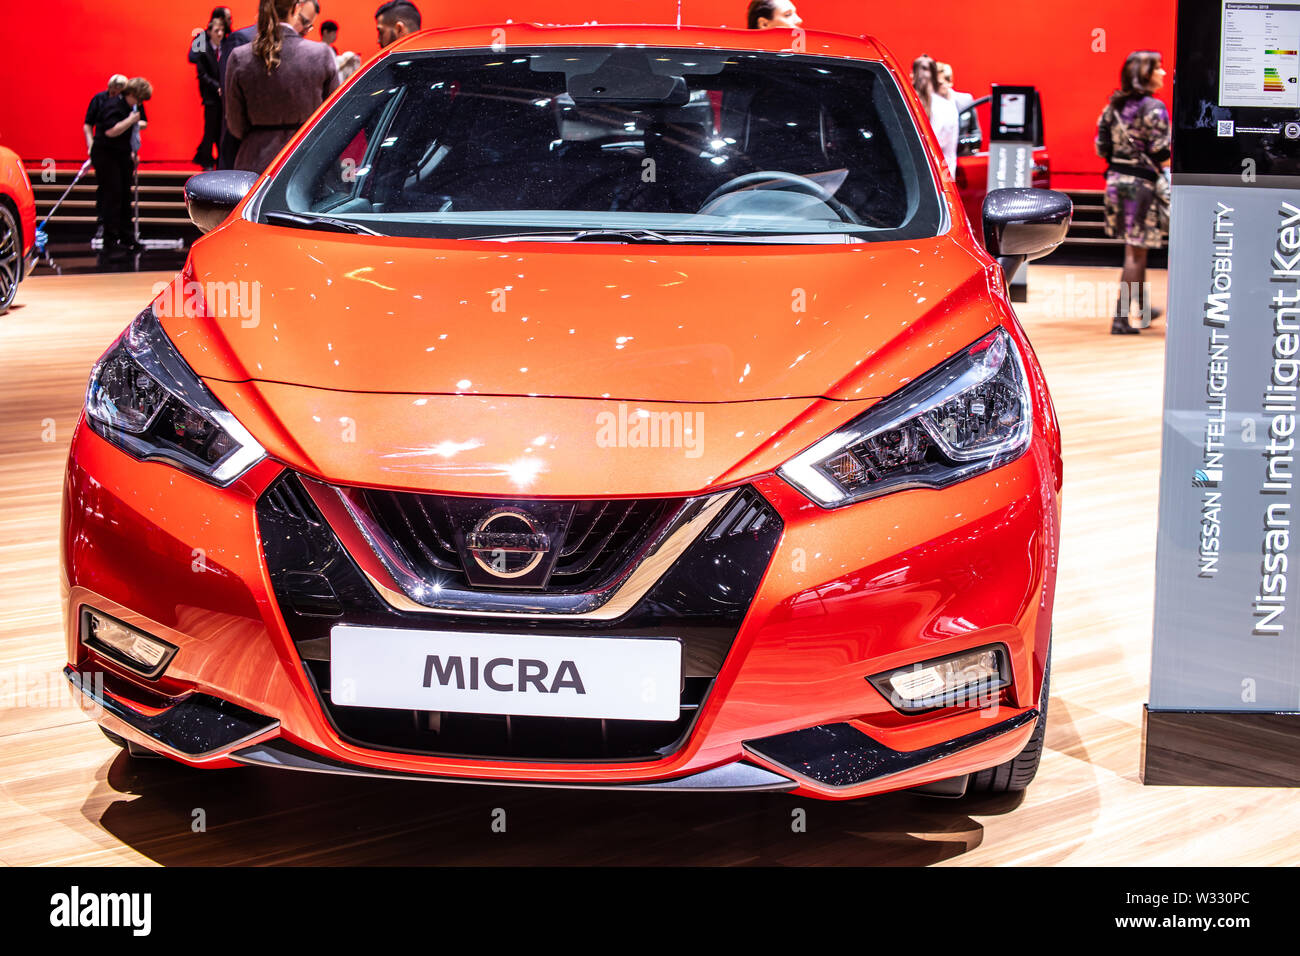 Nissan Micra V High Resolution Stock Photography And Images Alamy